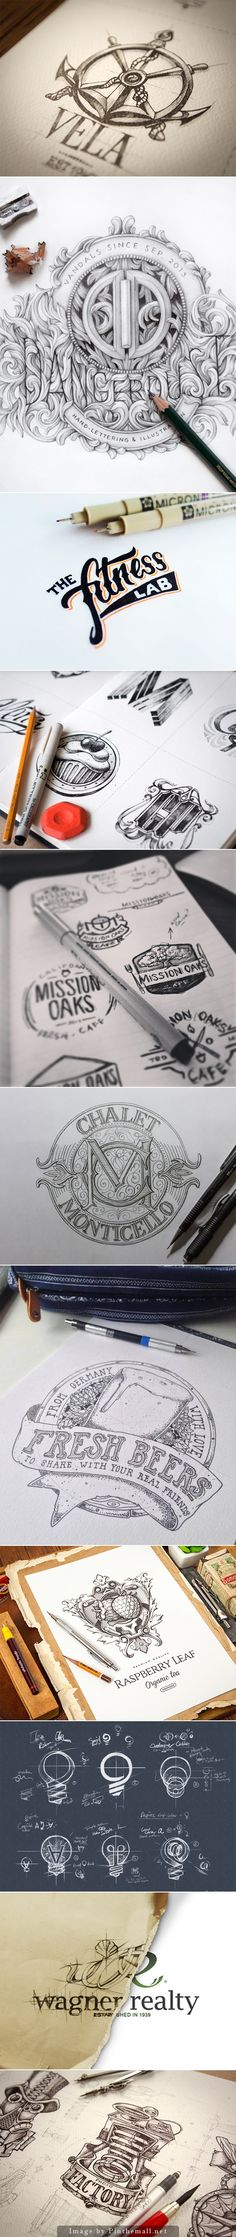 logo sketches #process - created via http://pinthemall.net